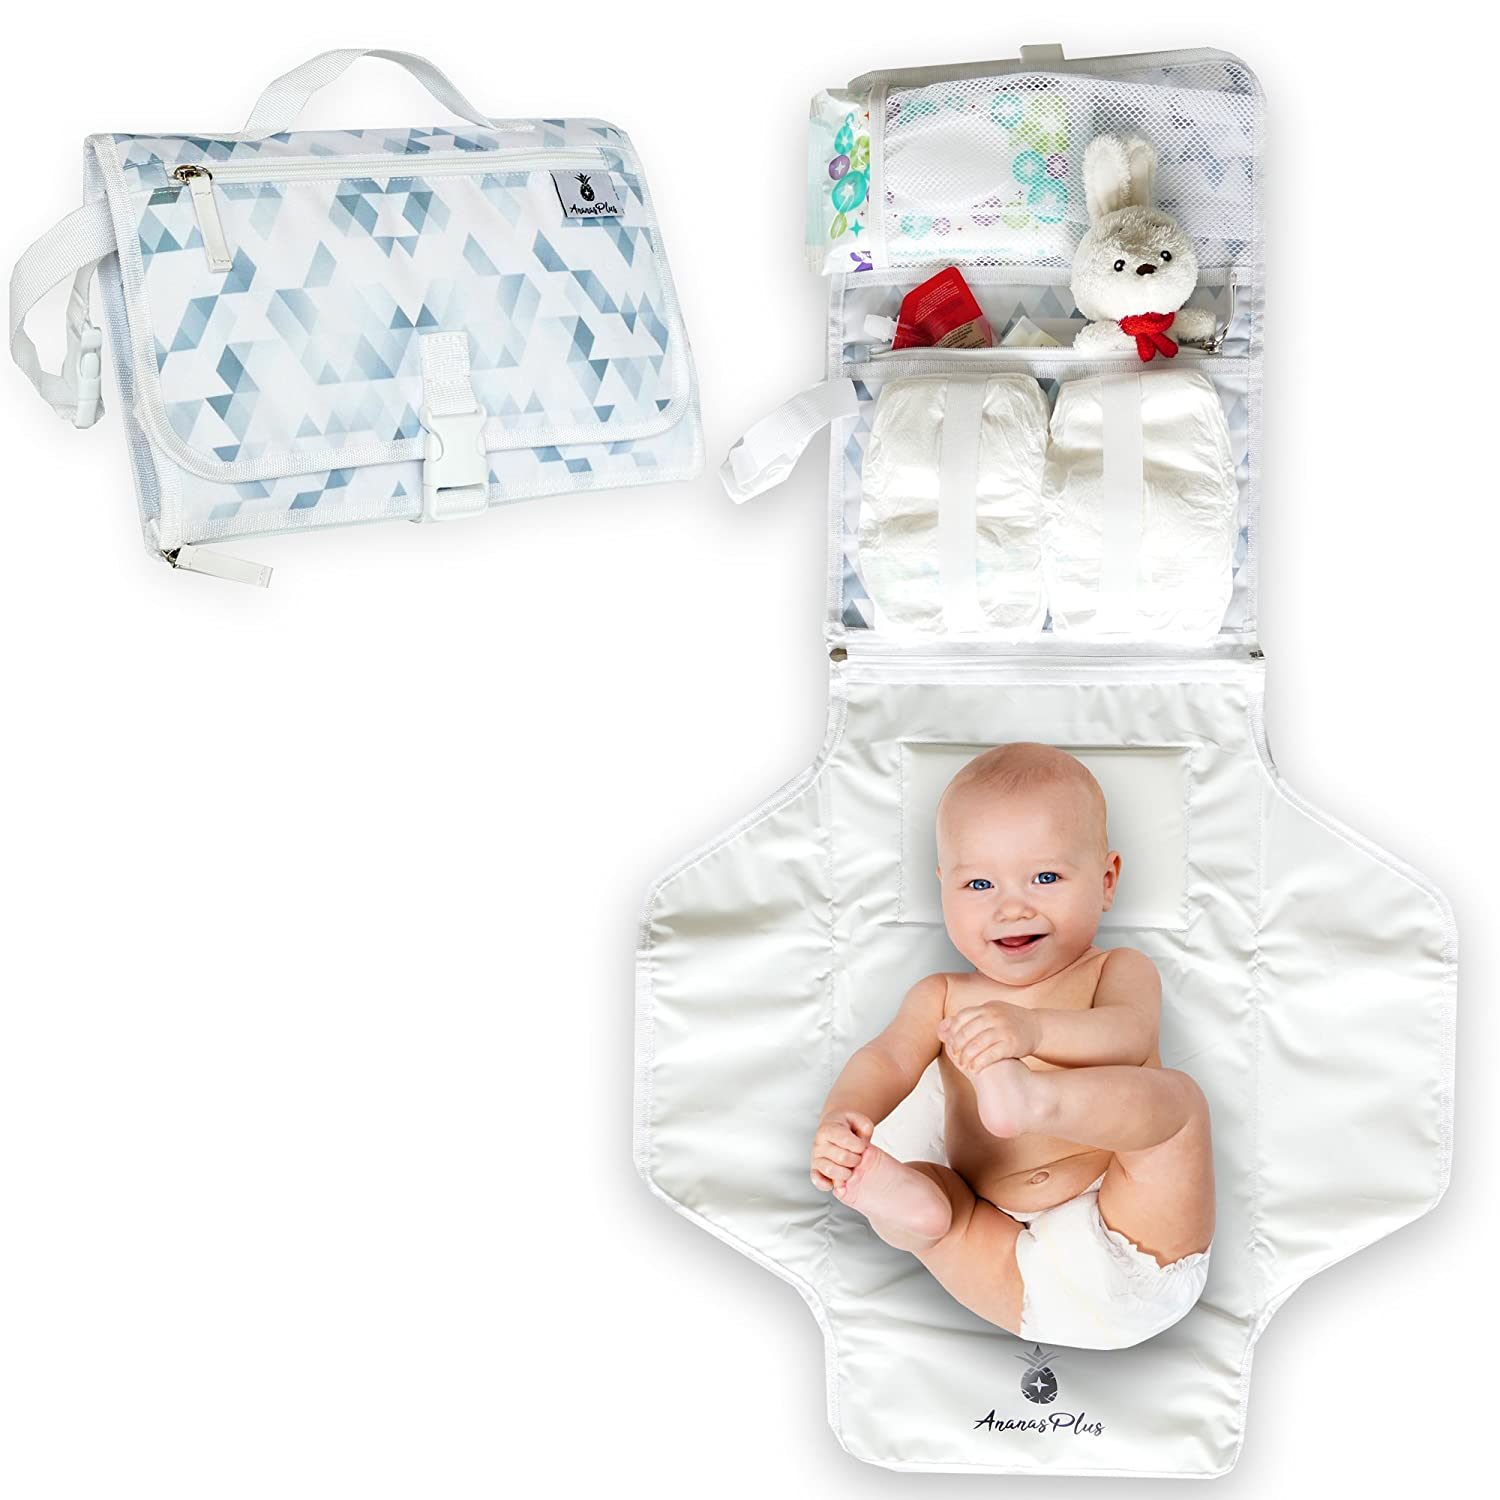 Portable Baby Diaper Changing Station by Ananas Plus: Waterproof BPA Free Cushioned Contoured Infant Diaper Changing Pad w/Pillow|2-in-1 Travel Changing Station & Stylish Bag| Top Baby Shower Gift